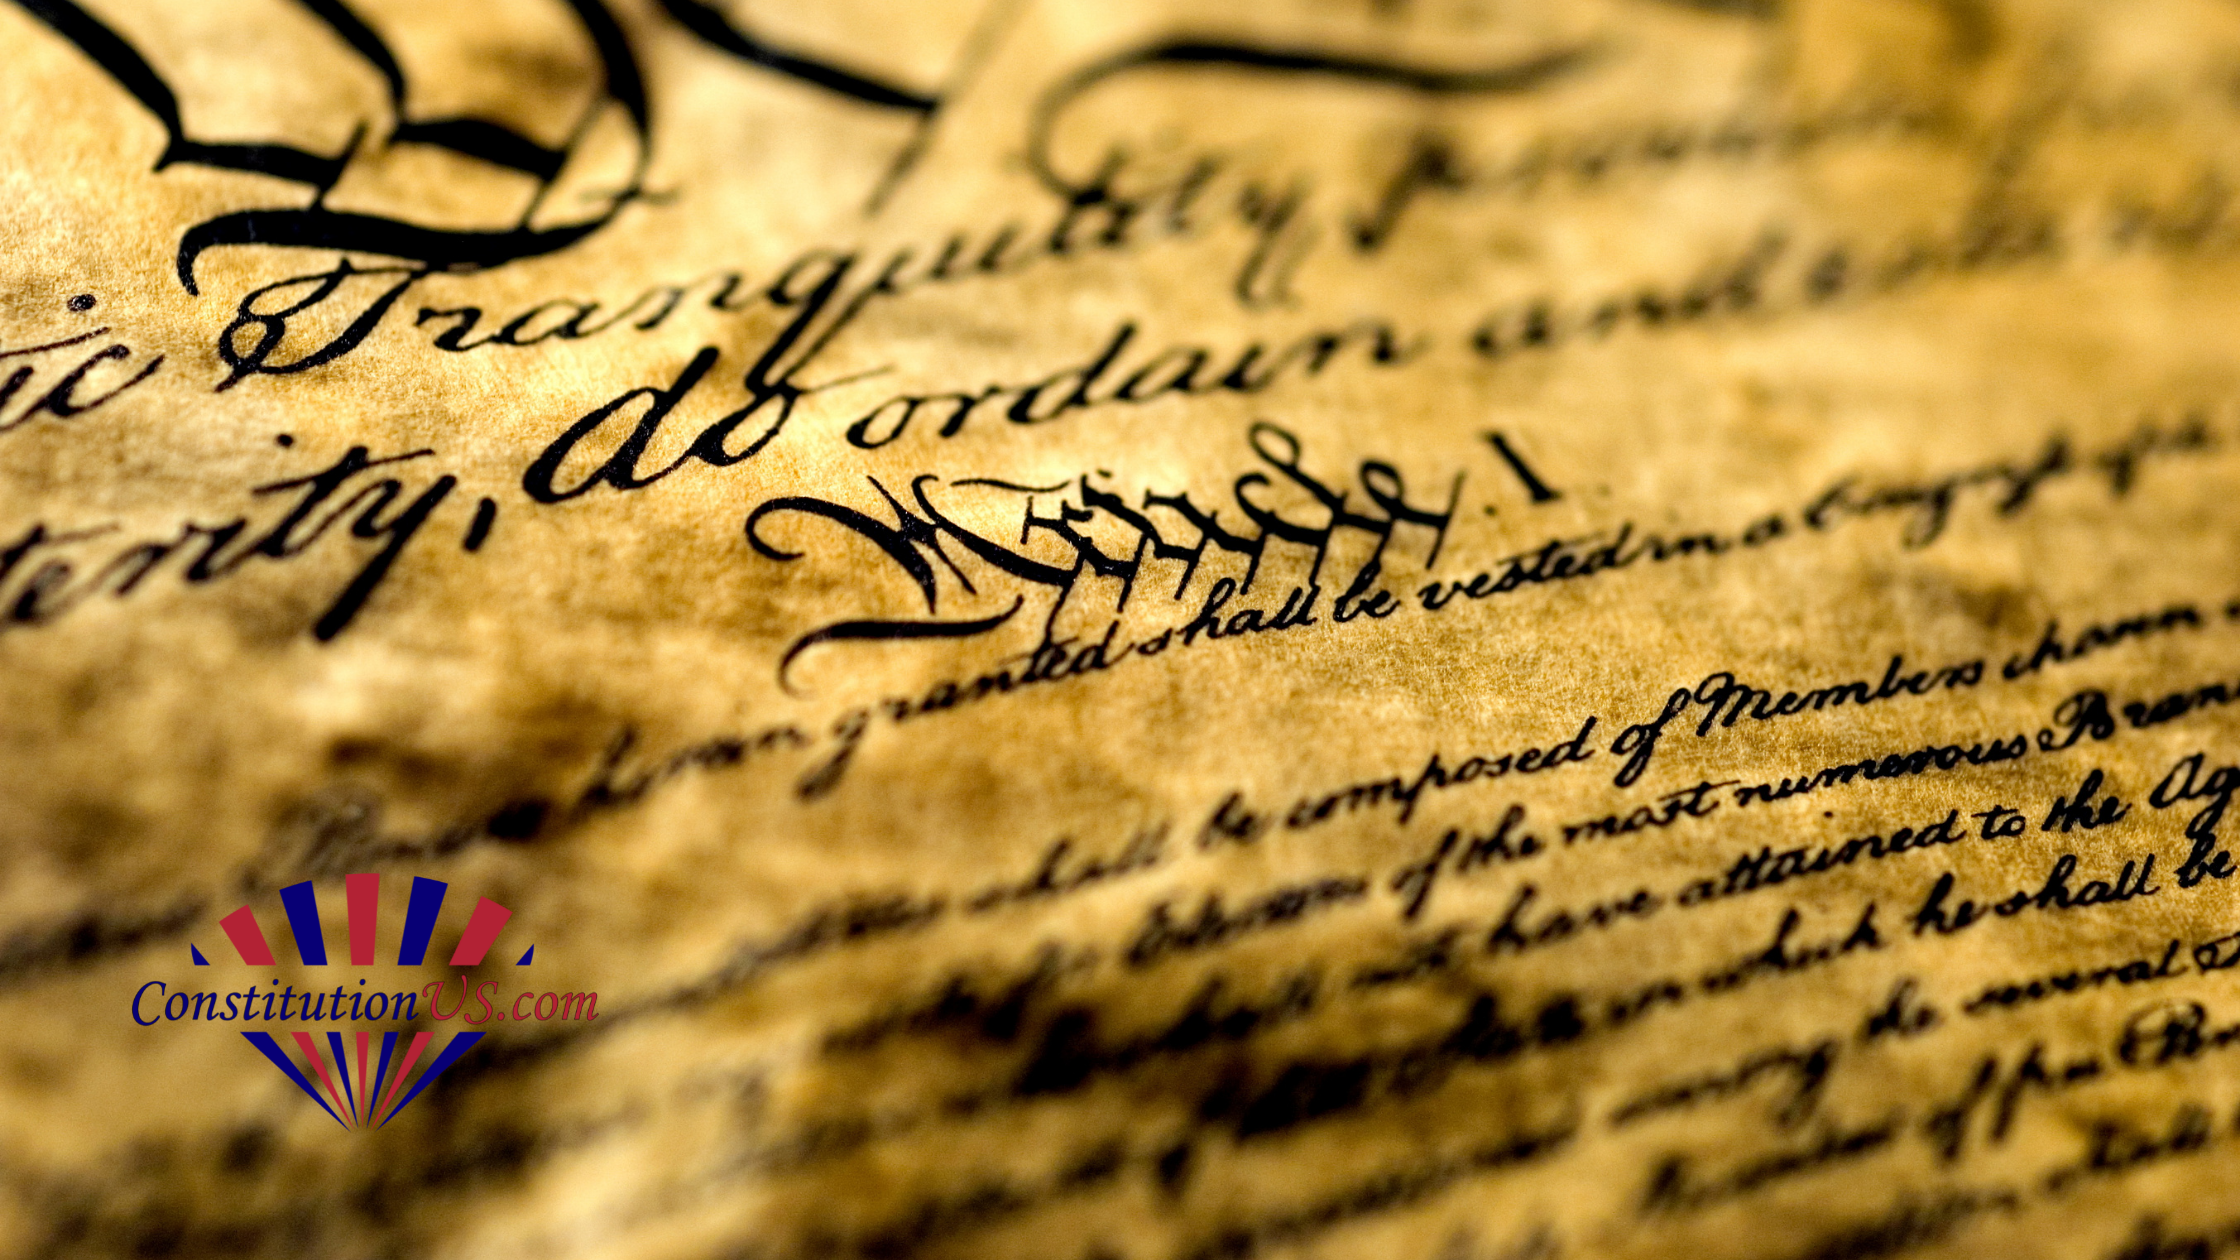 Image showing article 1 from the US Constitution